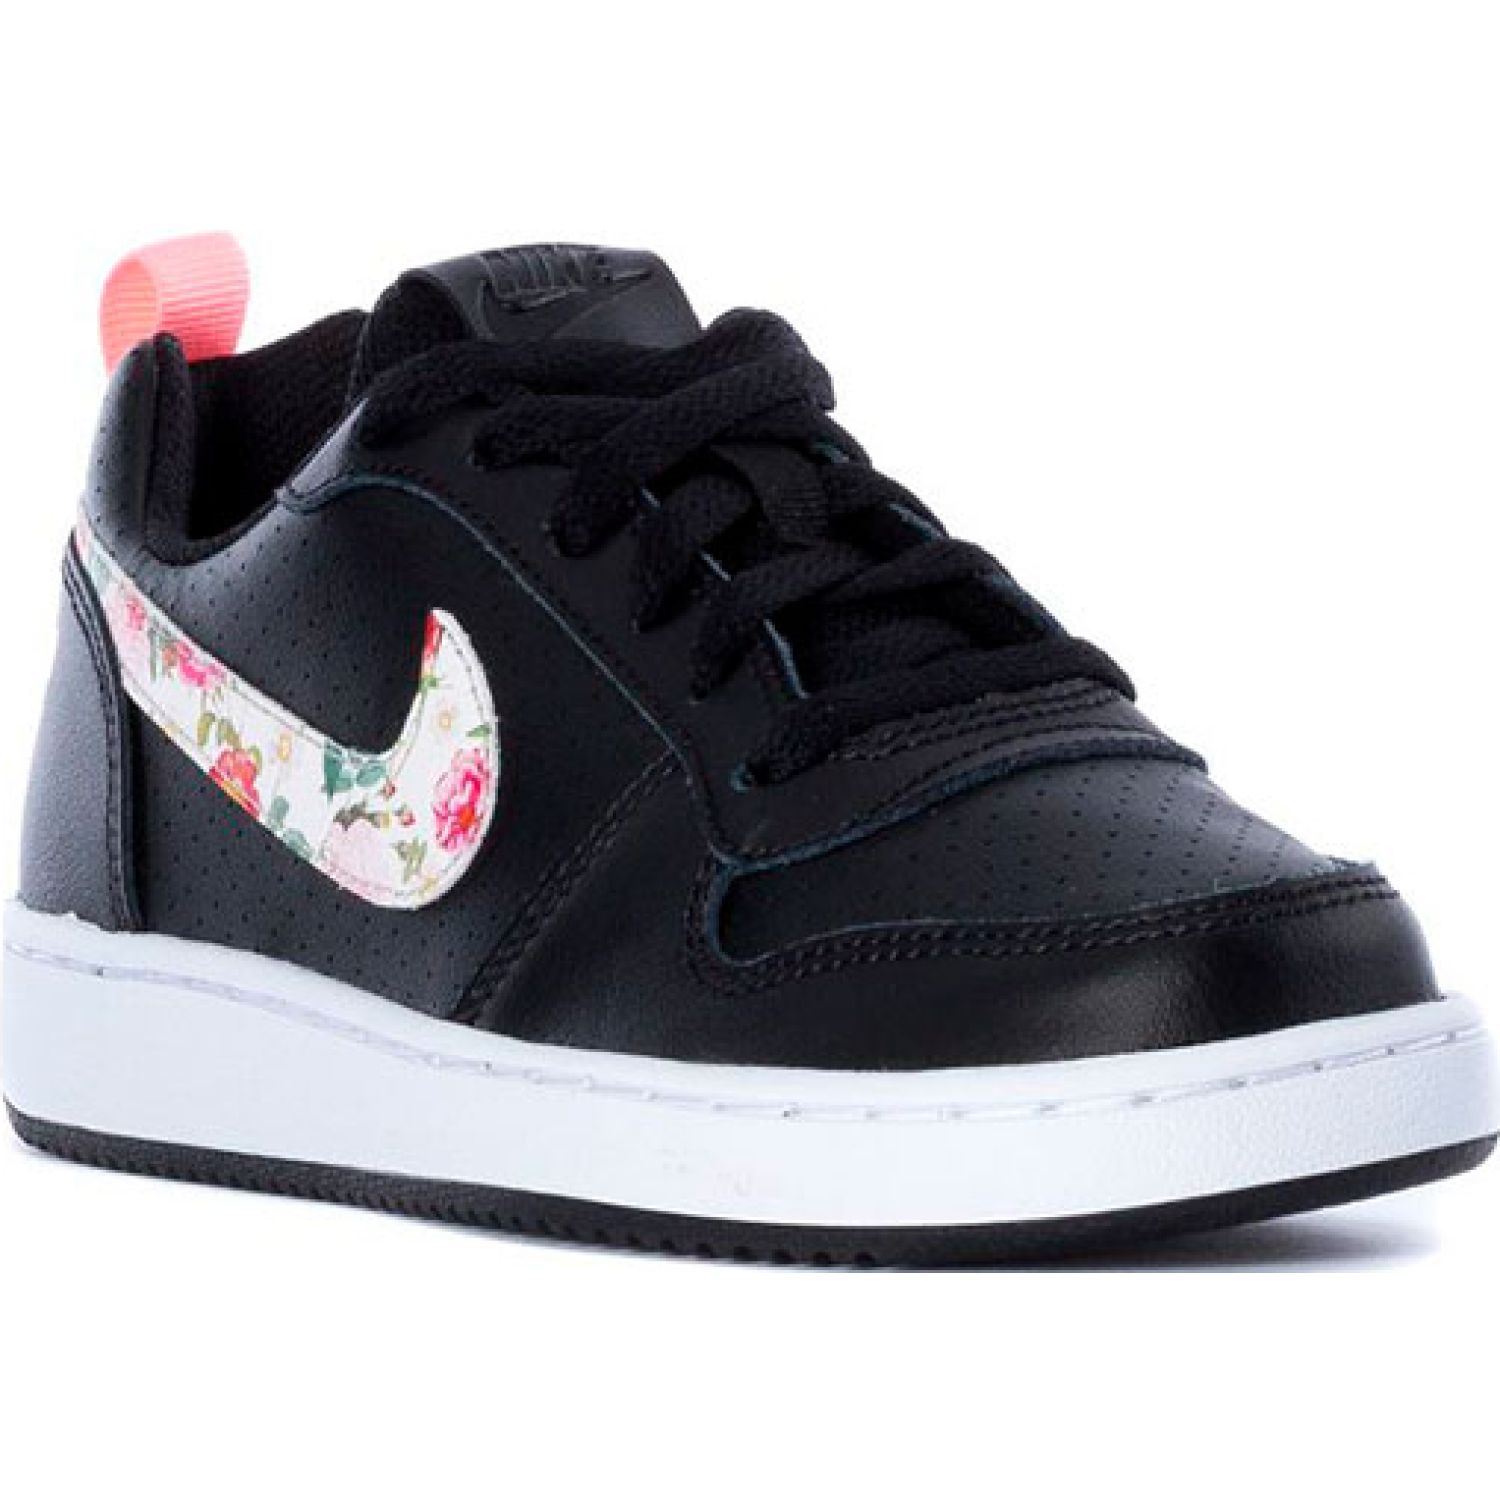 Nike nike court borough low vf gg Negro / rosado Chicas